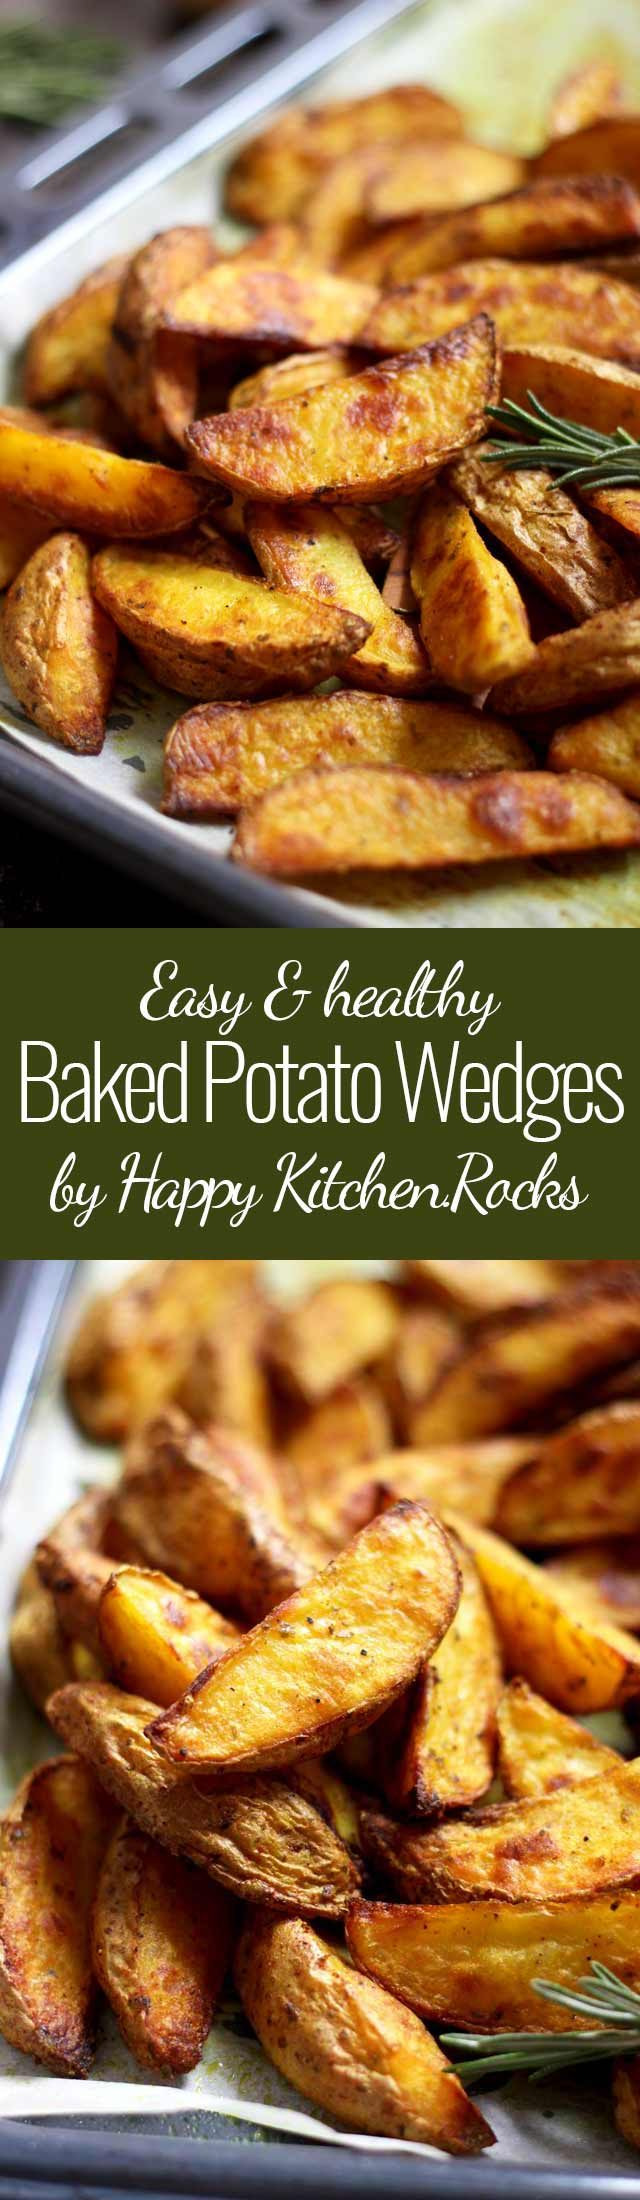 Easy Baked Potato Wedges Super Long Collage with Text Overlay